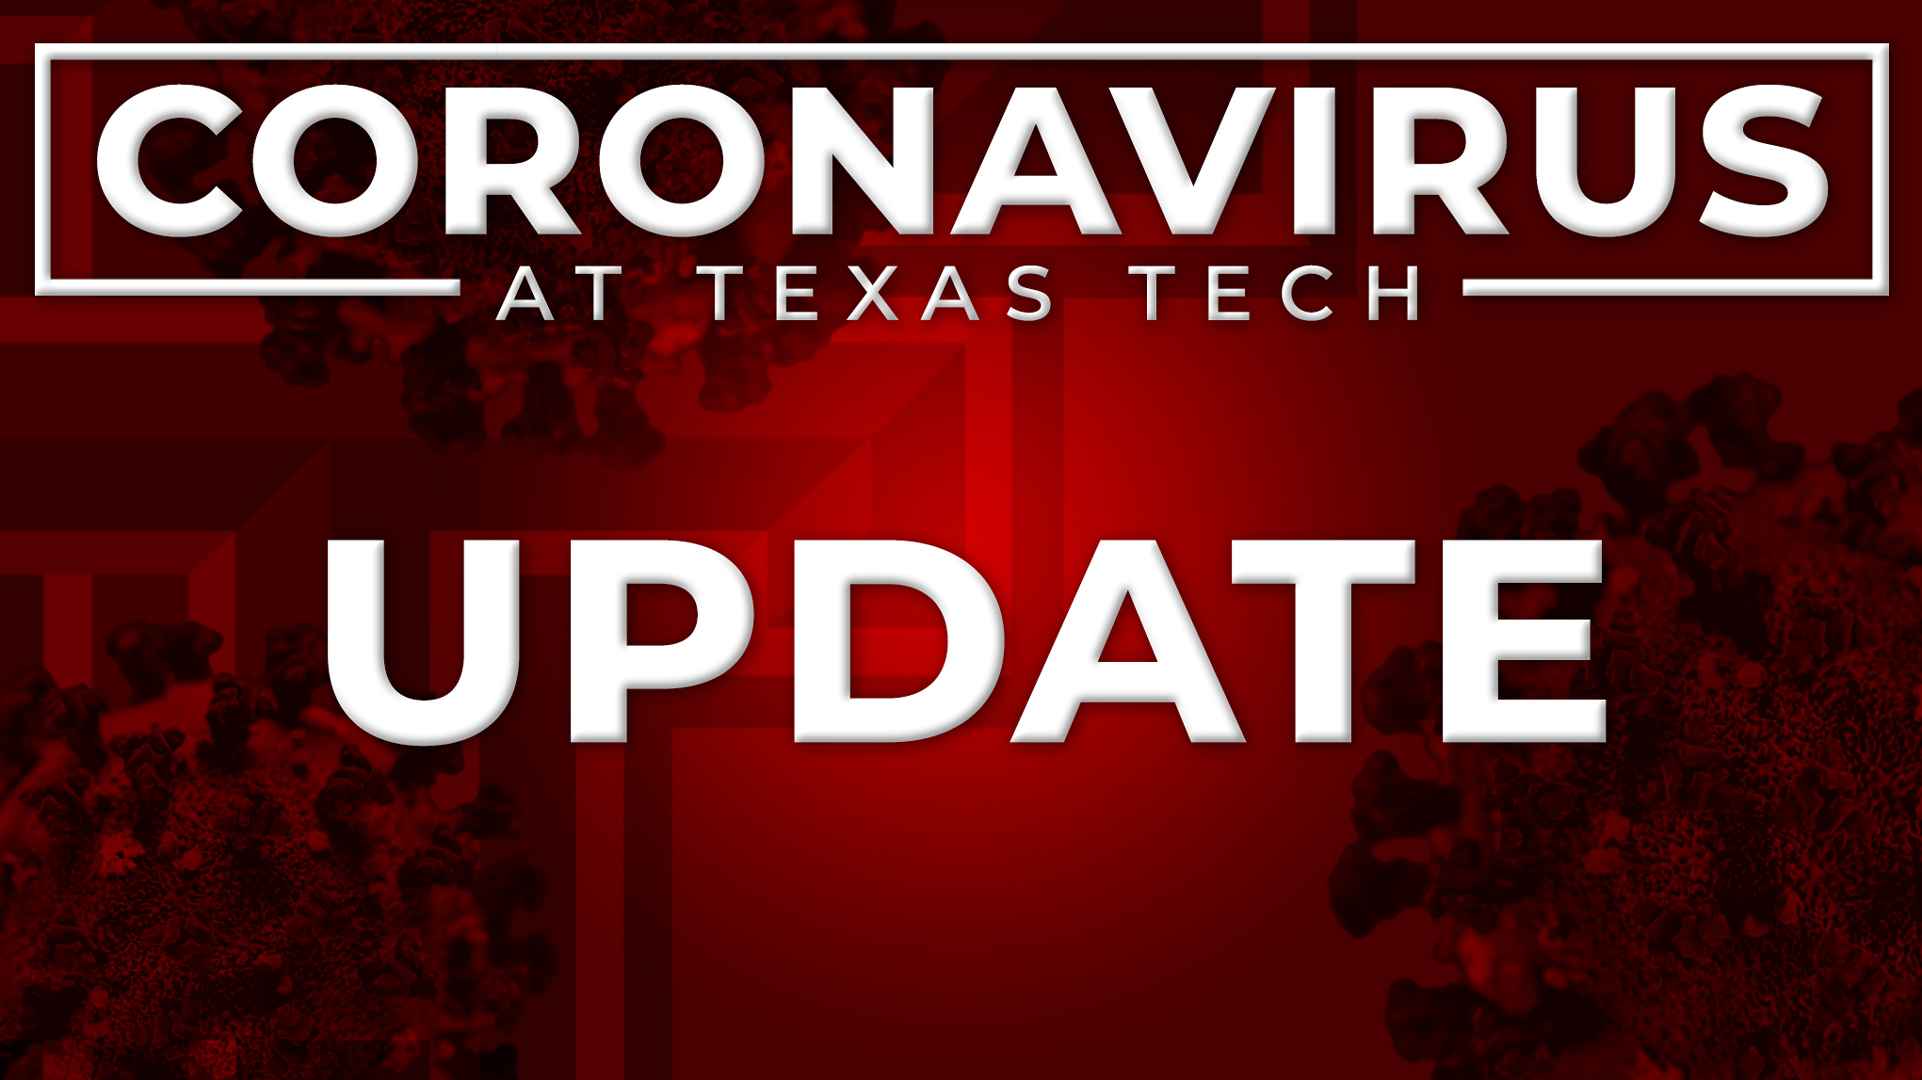 Texas Tech Coronavirus update